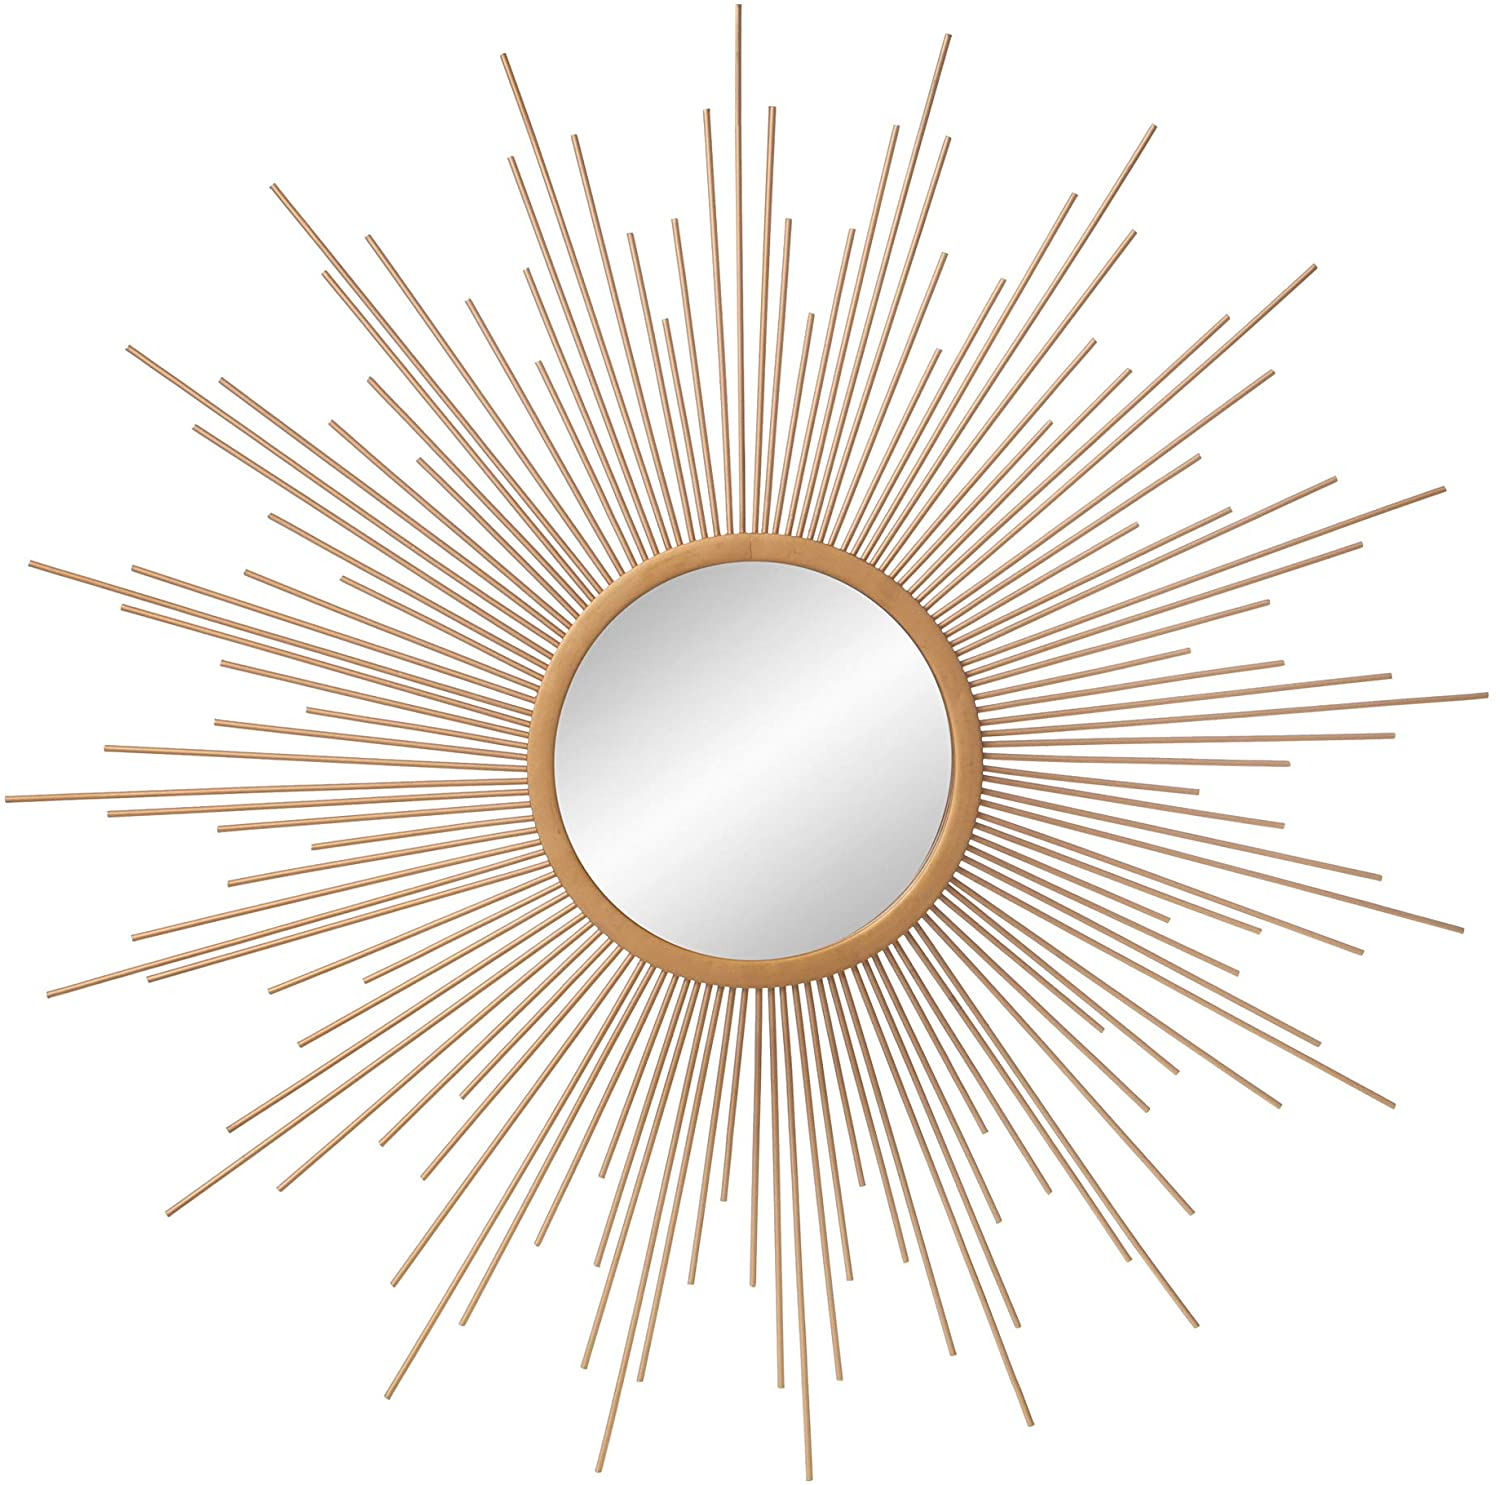 Gold Spoked Sunburst Wall Accent Mirror